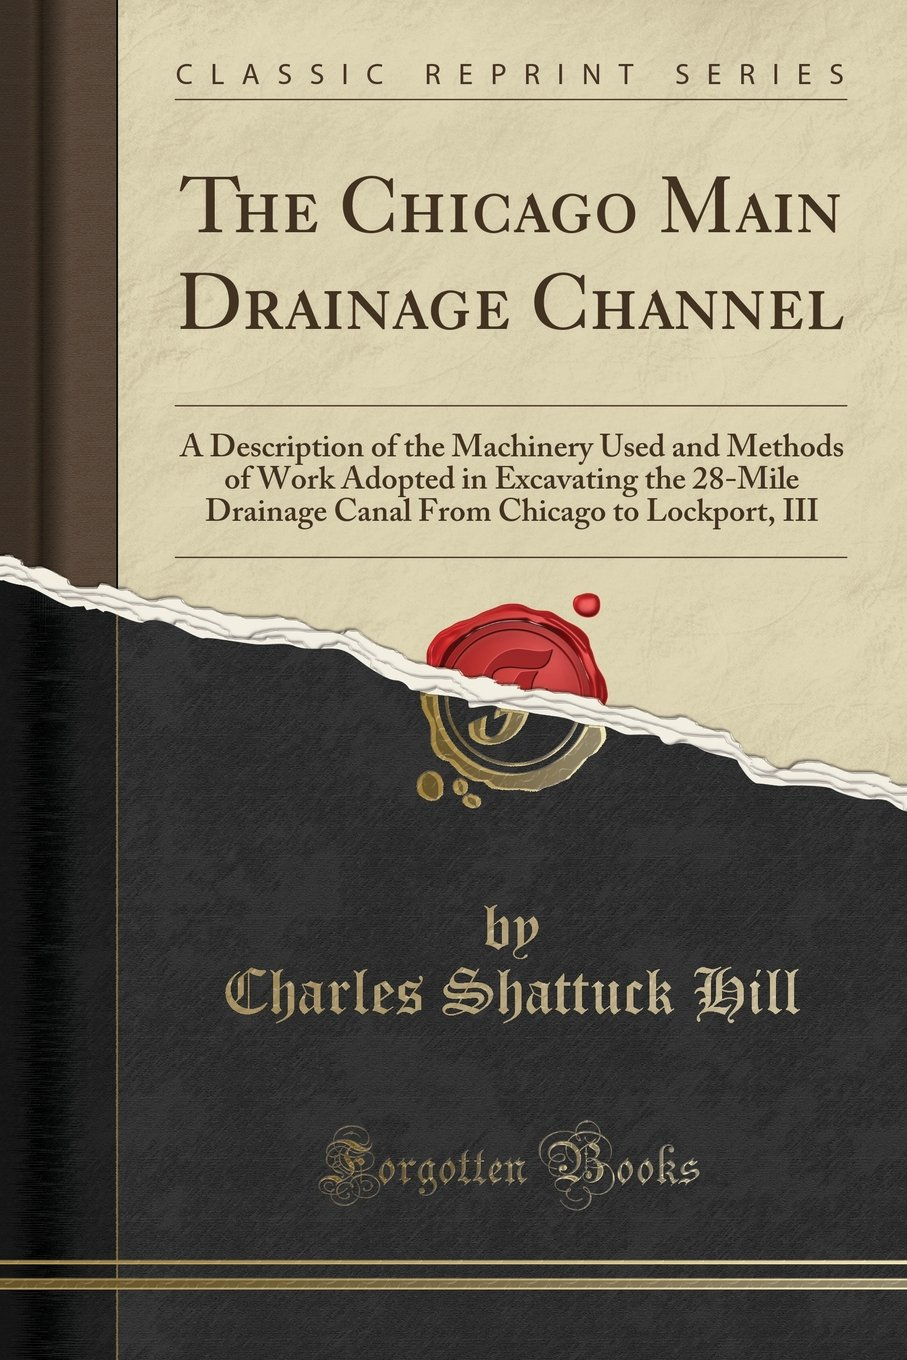 The Chicago Main Drainage Channel: A Description of the Machinery Used and Methods of Work Adopted in Excavating the 28-Mile Drainage Canal From Chicago to Lockport, III (Classic Reprint) pdf